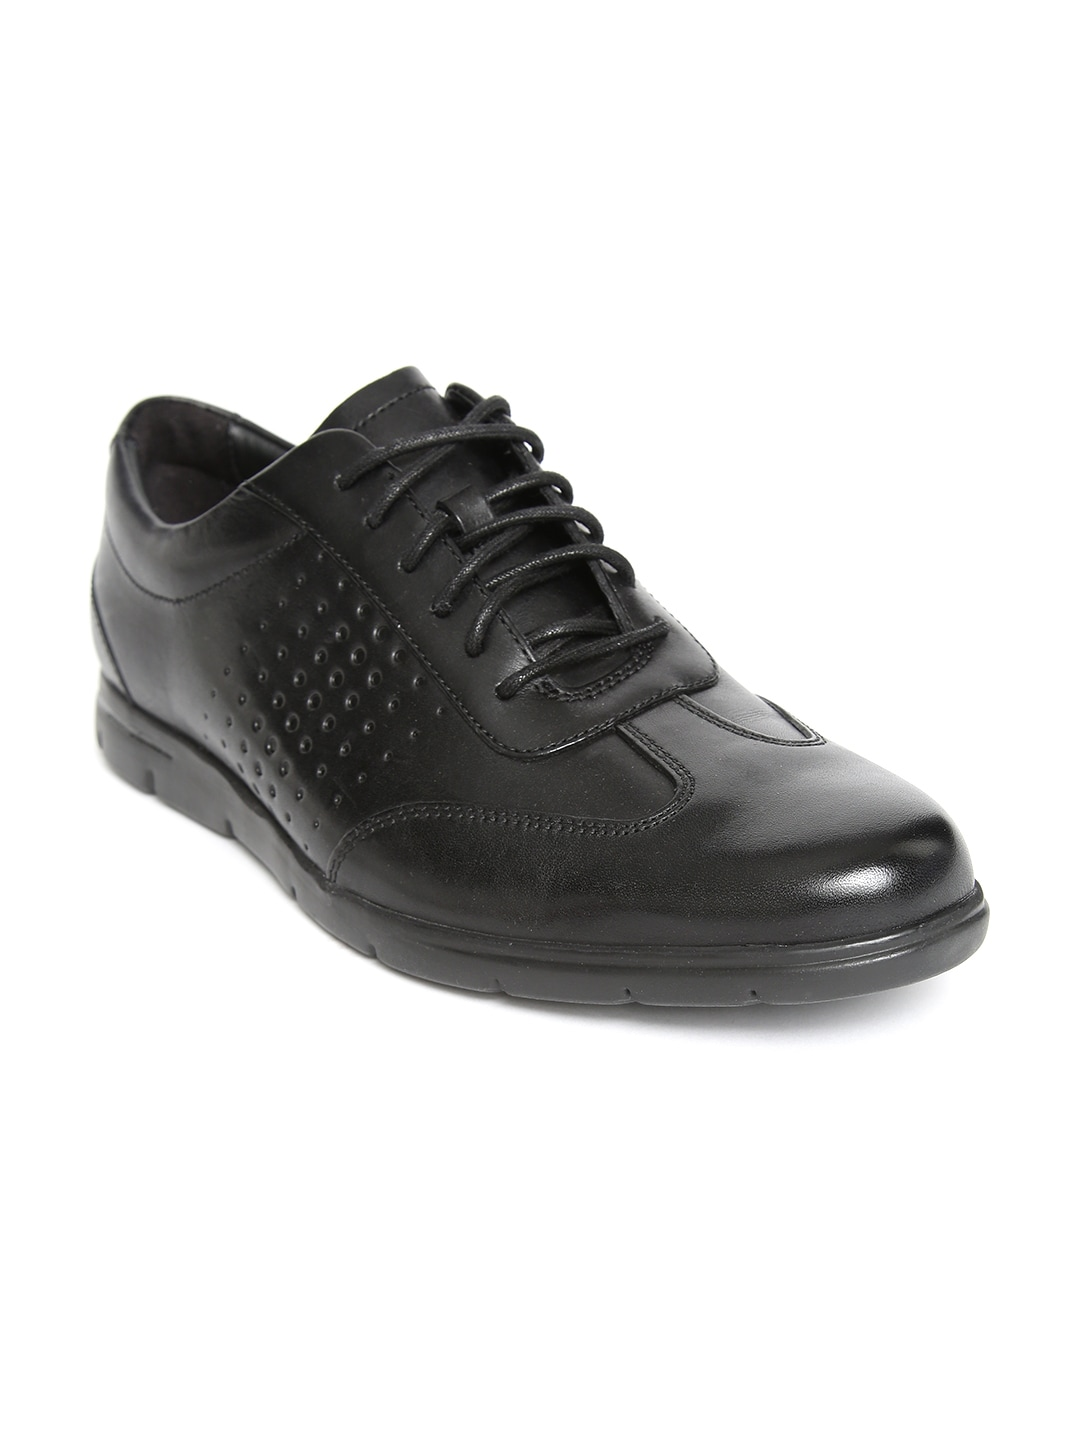 0e4350627021 CLARKS - Exclusive Clarks Shoes Online Store in India - Myntra